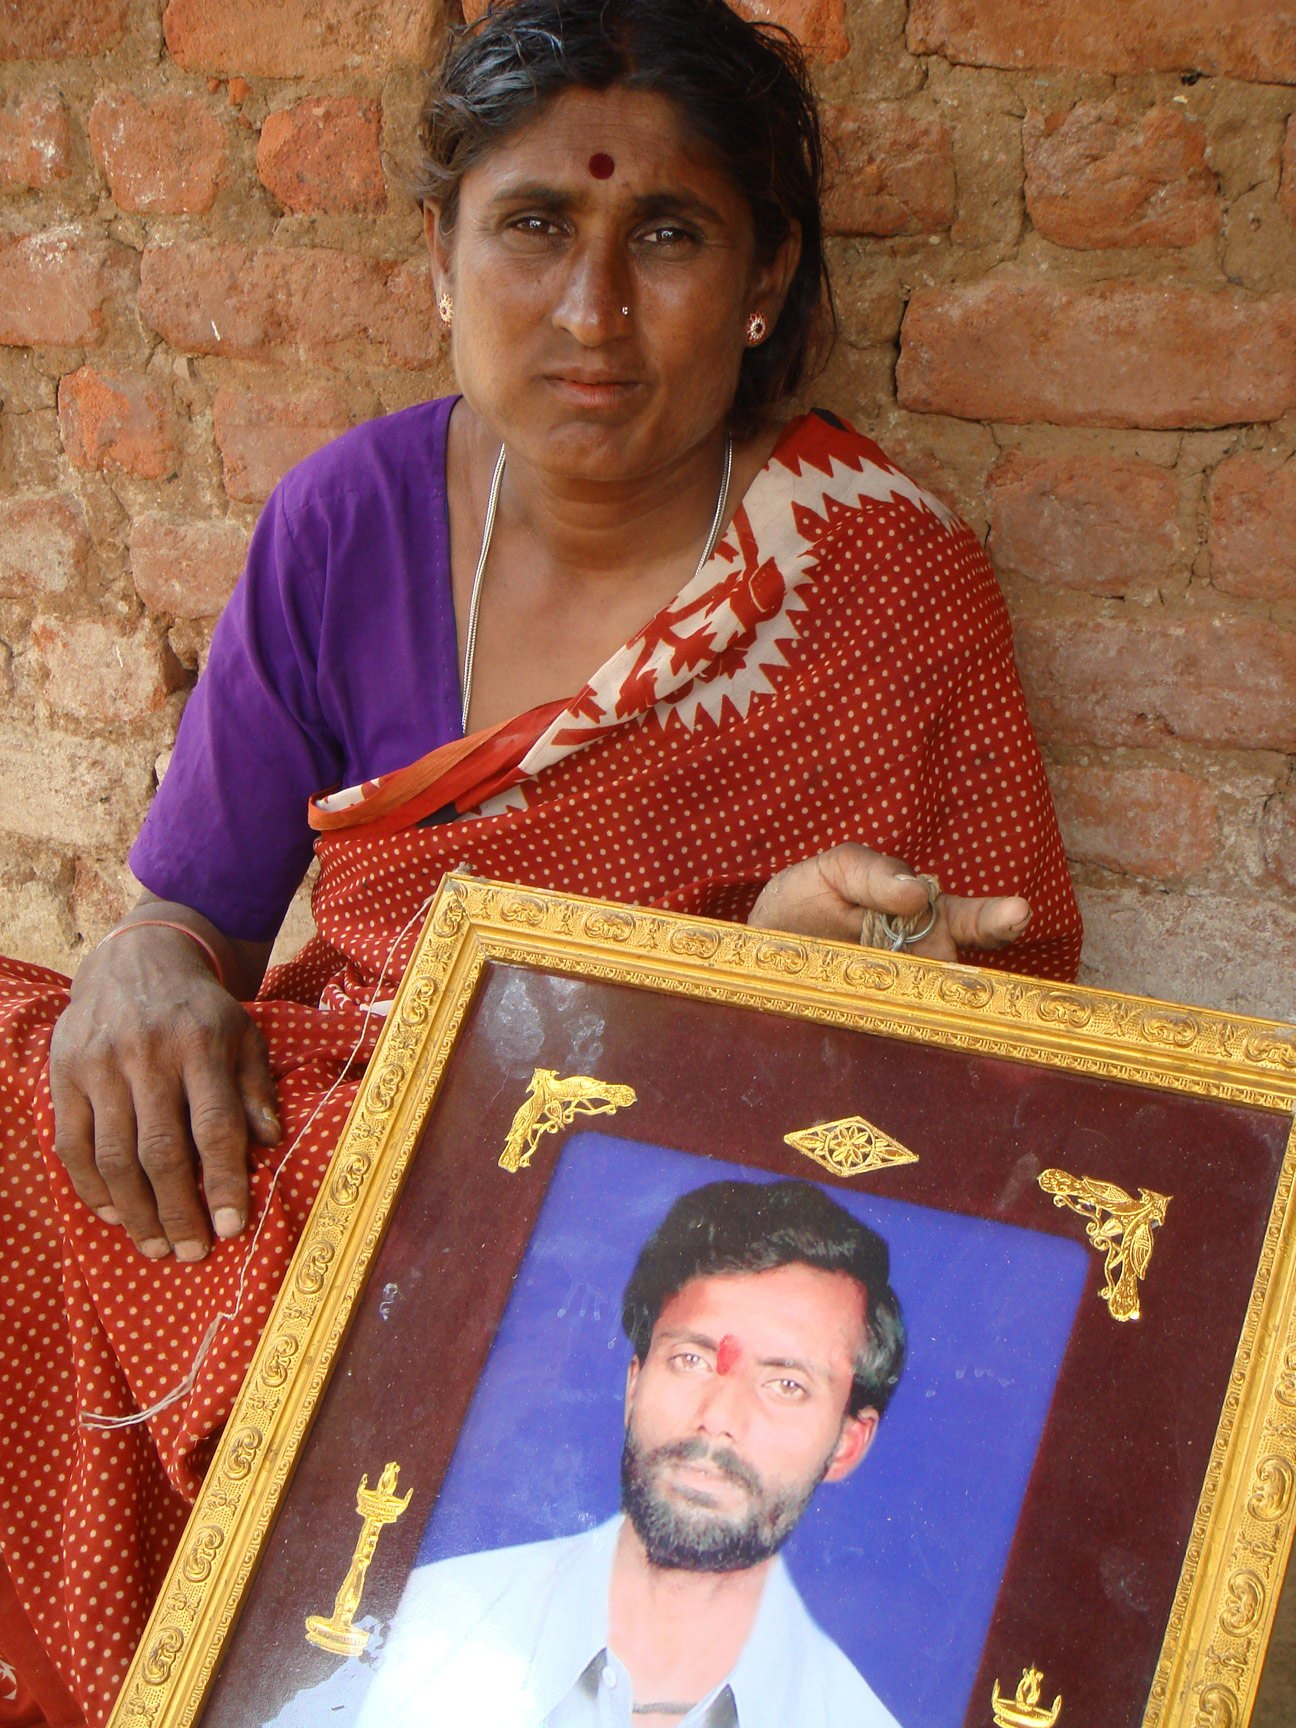 Jayalakshmamma holding the photo of her deceased husband